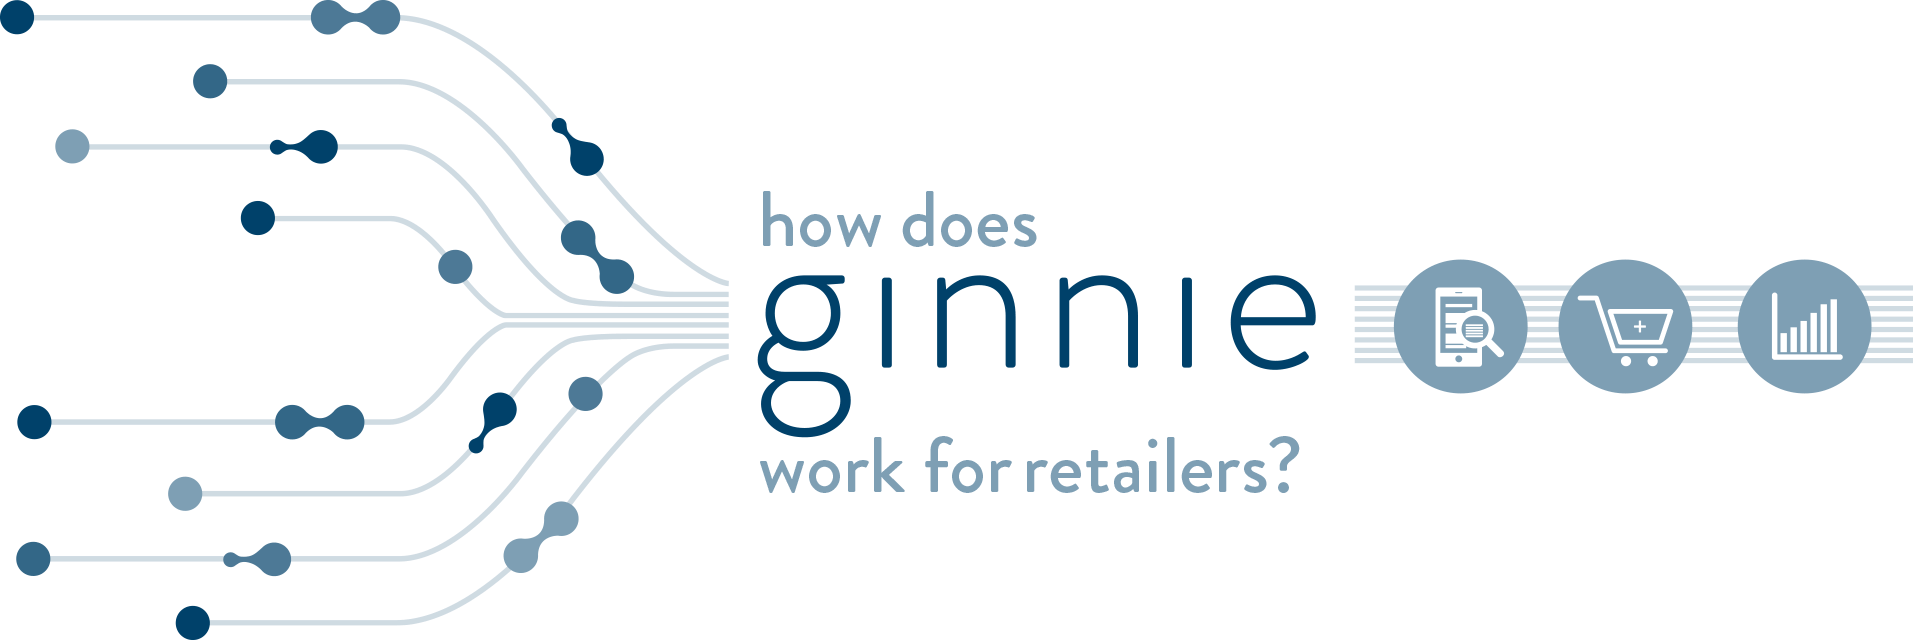 infographic outlining how ginnie works for retailers